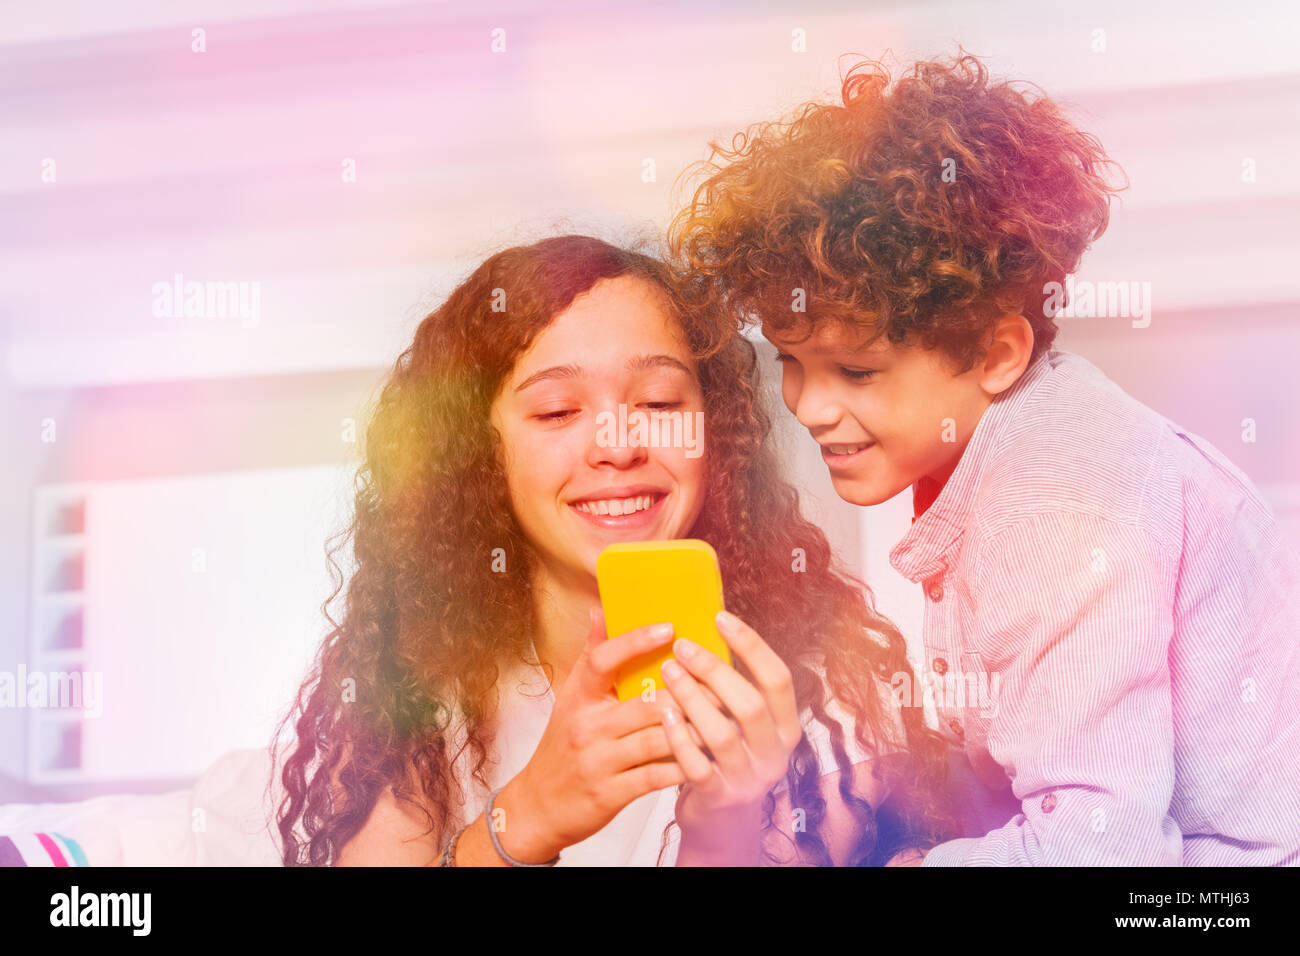 Indoor shot of teenage boy and girl using yellow mobile phone, texting in social networks - Stock Image